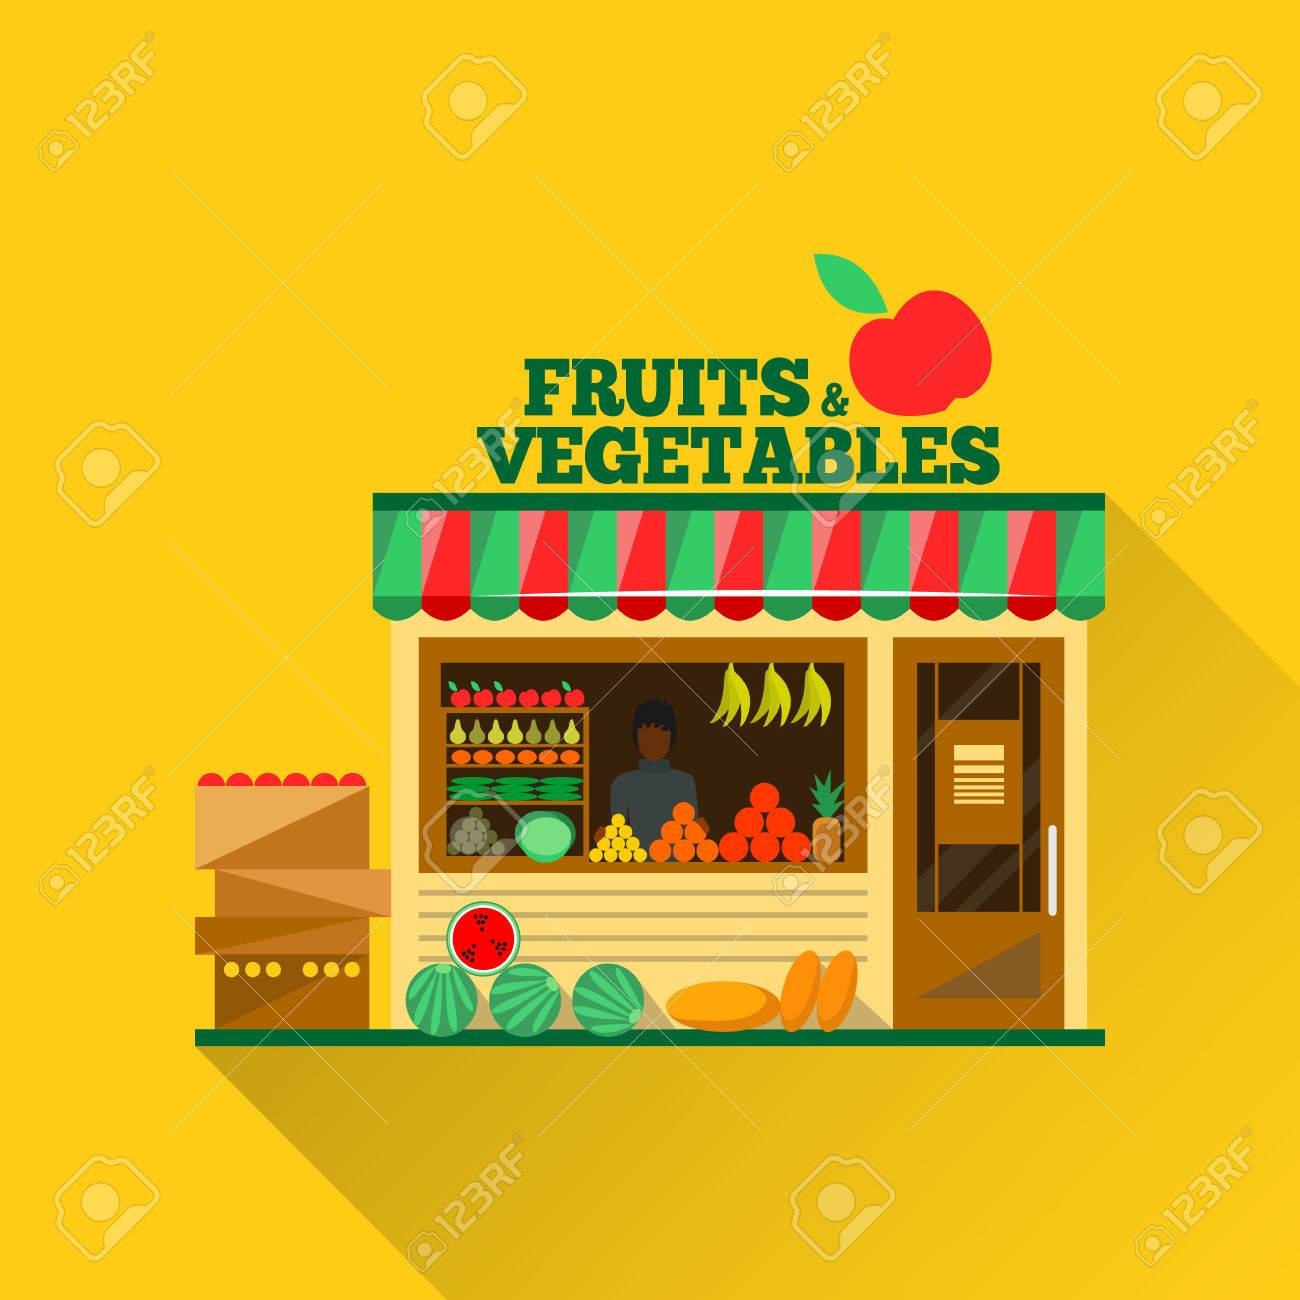 Fruits and vegetables shop. Man silhouette in a shop window. Green grocery stall. Food shop vector illustration. Banana, apple, orange, lime, pumpkin. Promotion of healthy eating concept. - 51850301